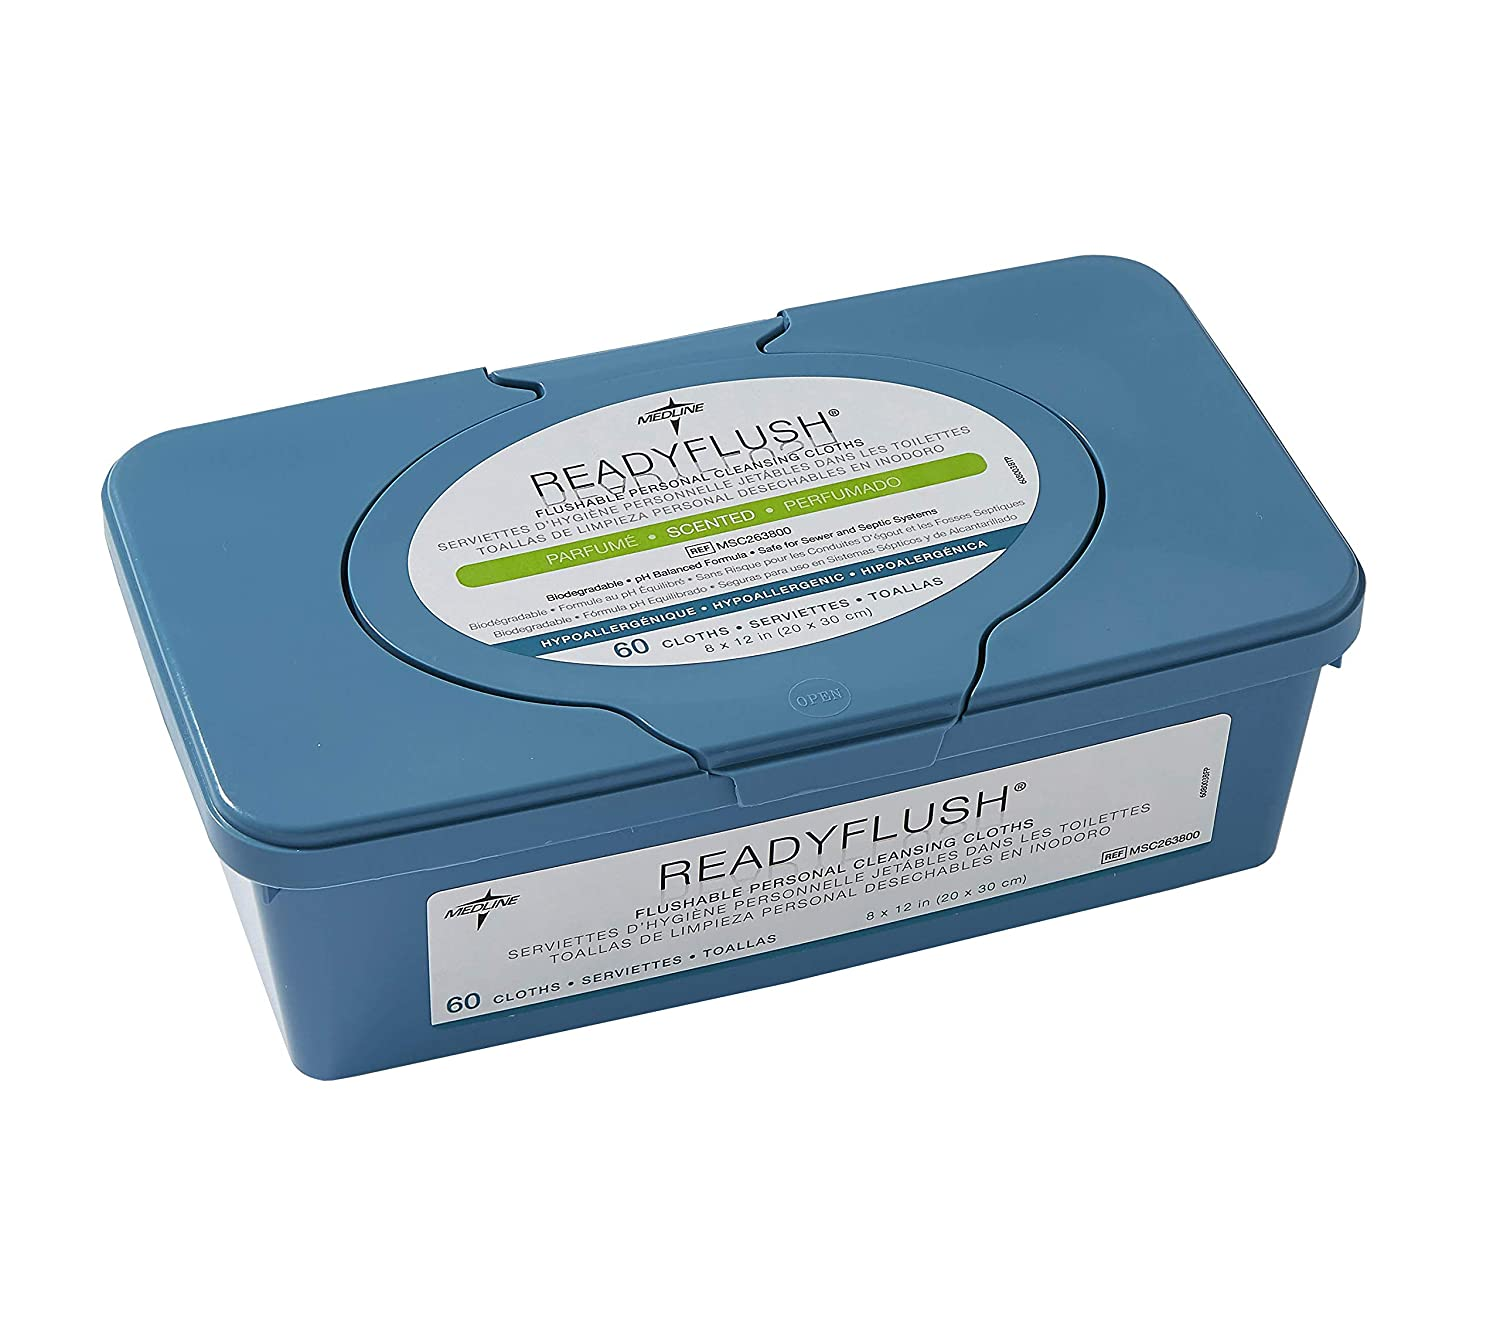 Medline ReadyFlush Large Adult-Sized 8x12 Personal Cleansing Cloths - Tub of 60 Flushable Wipes